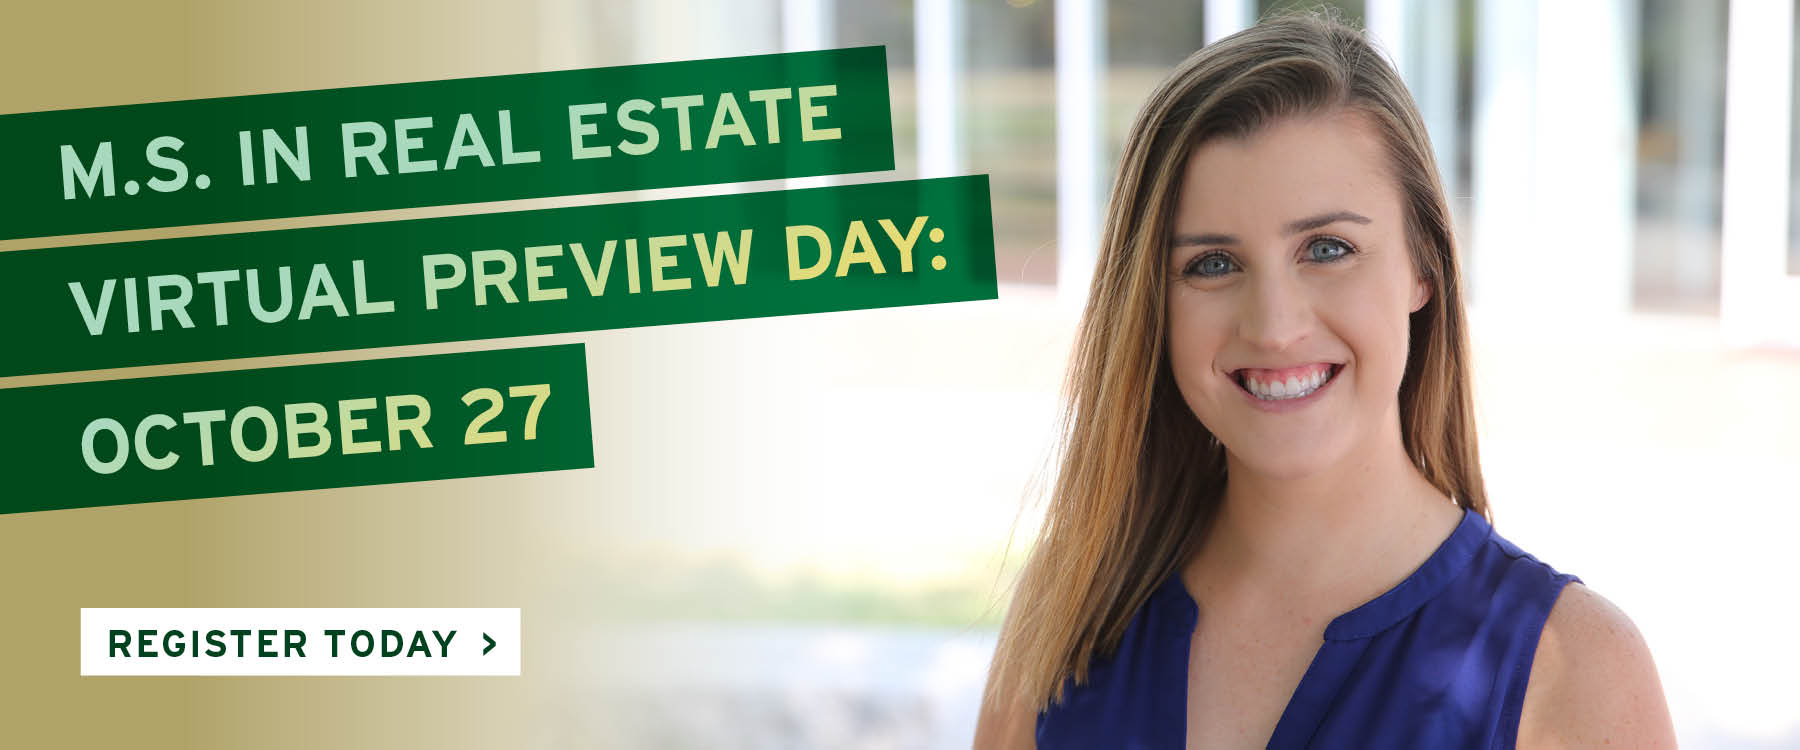 M.S. in Real Estate Virtual Preview Day